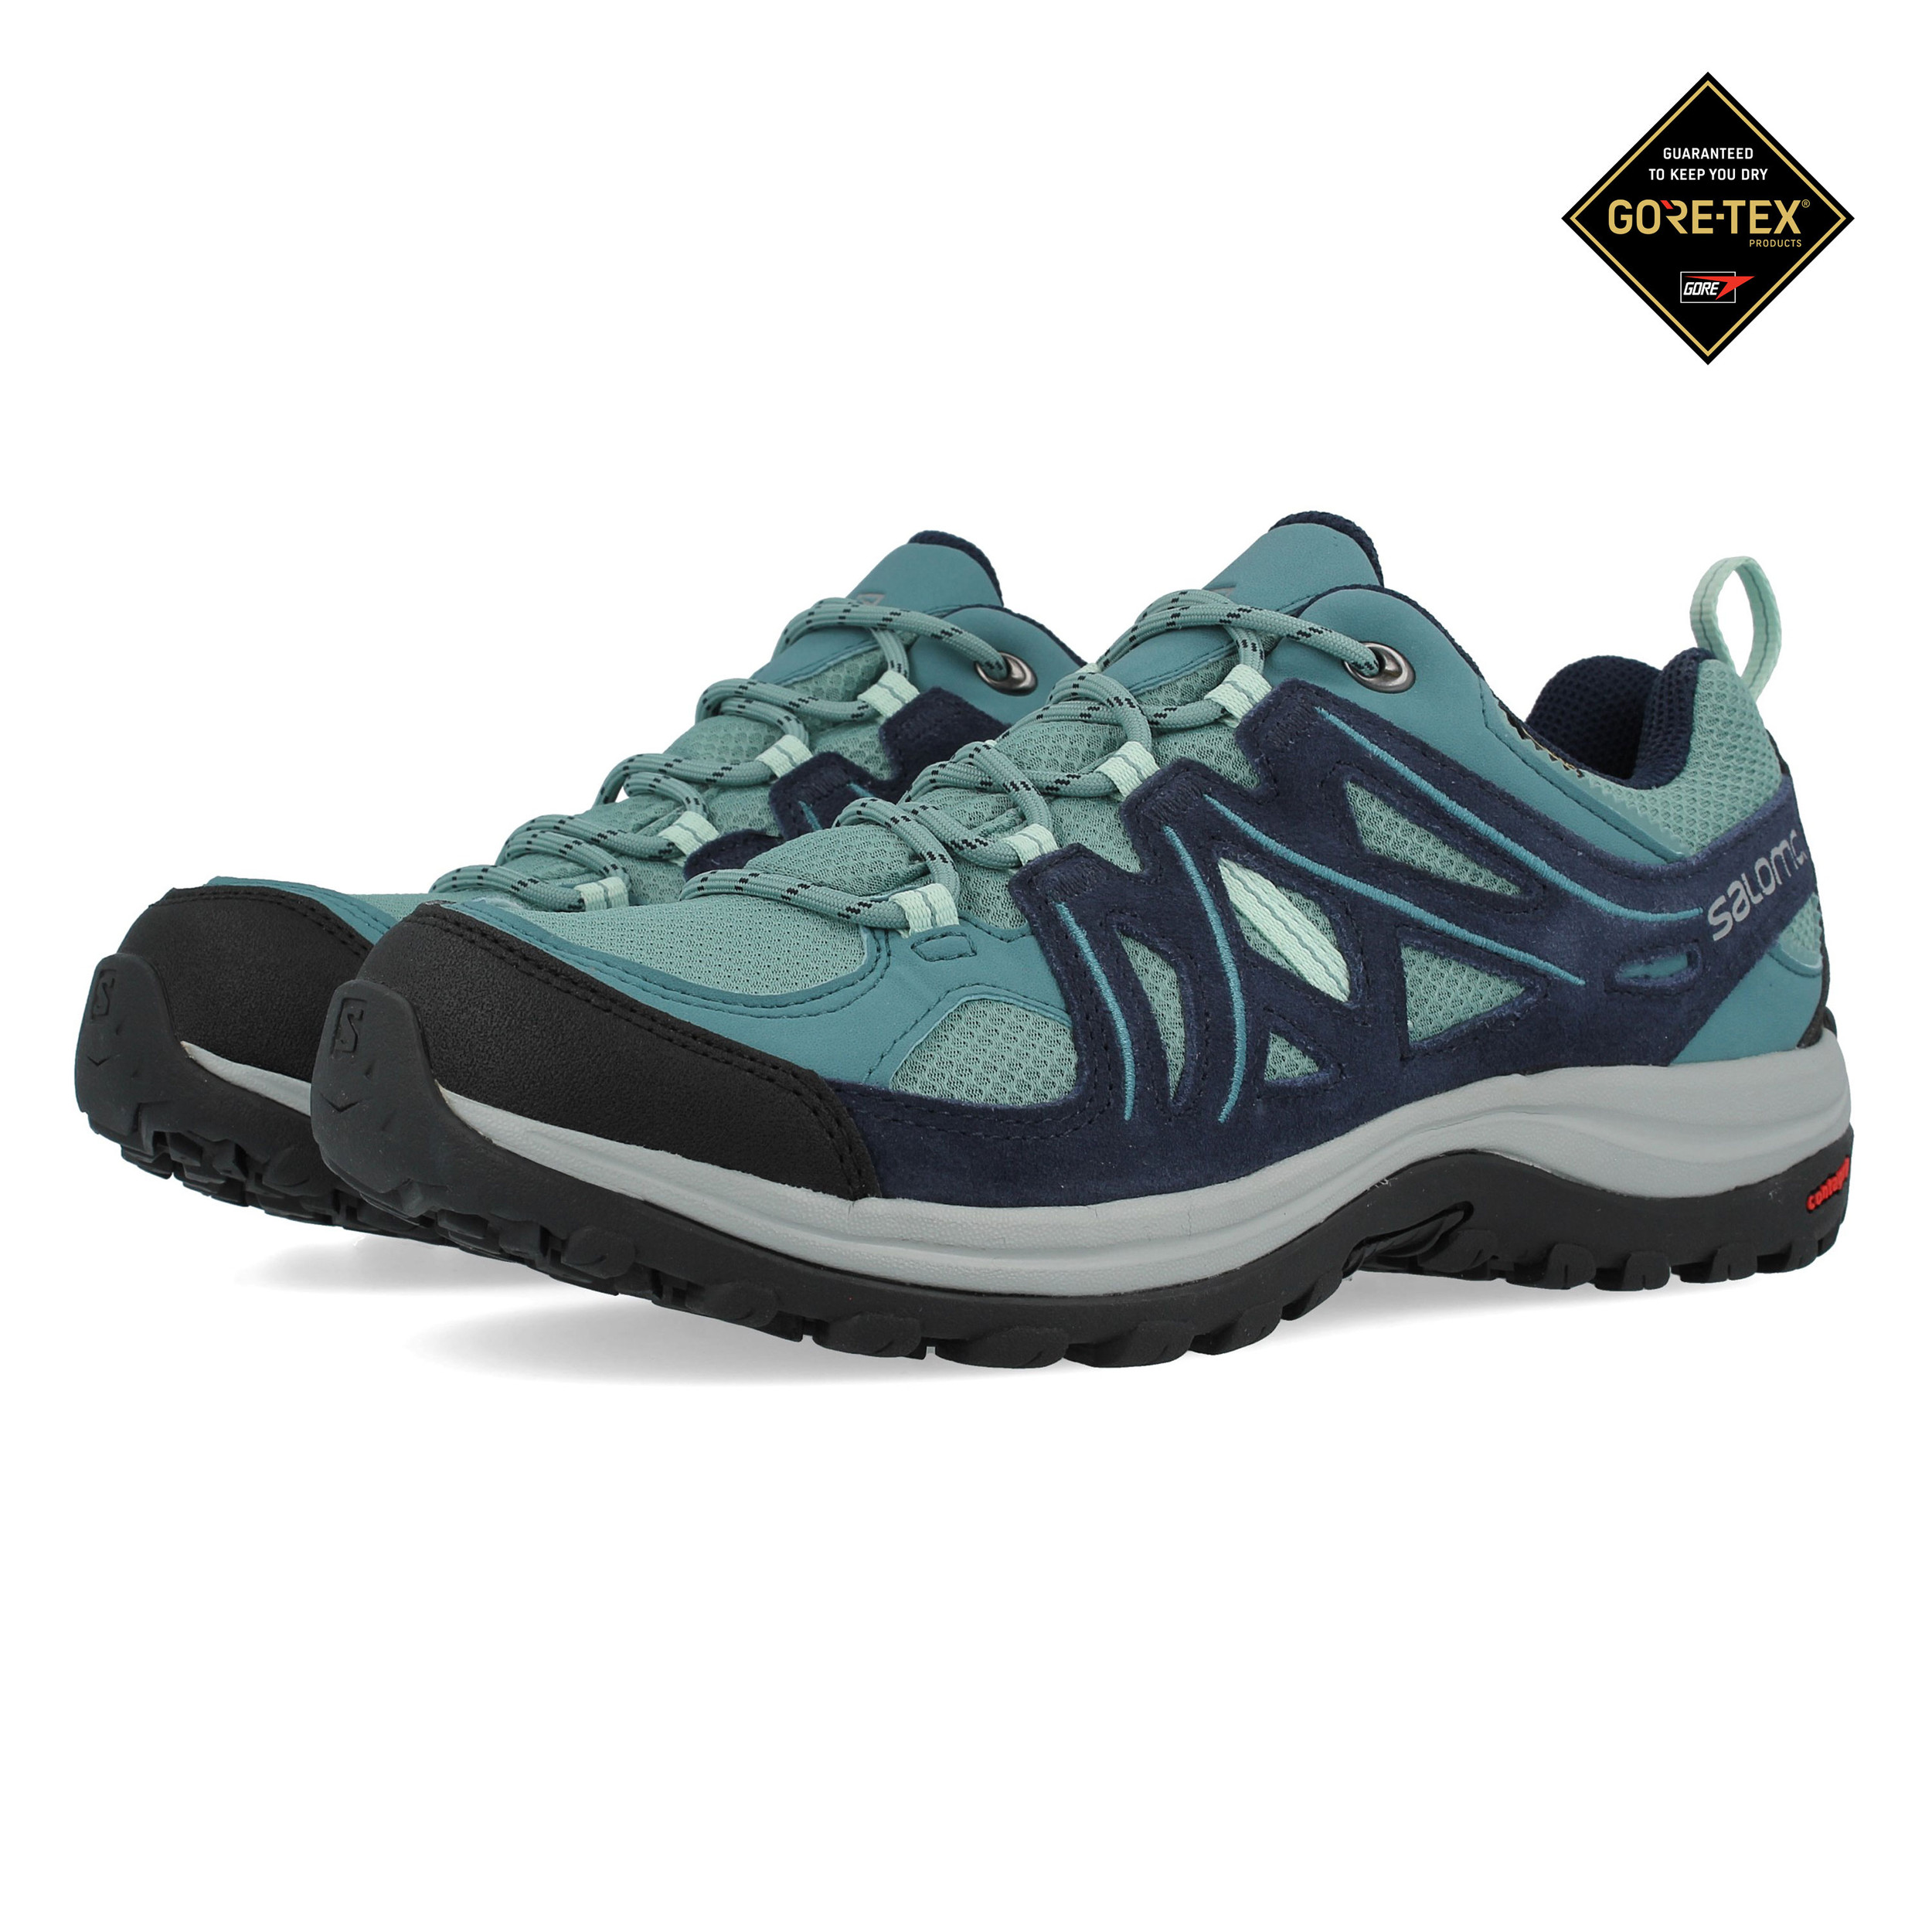 Salomon Ellipse Sport W Lady PurpleBlue Hiking Shoes